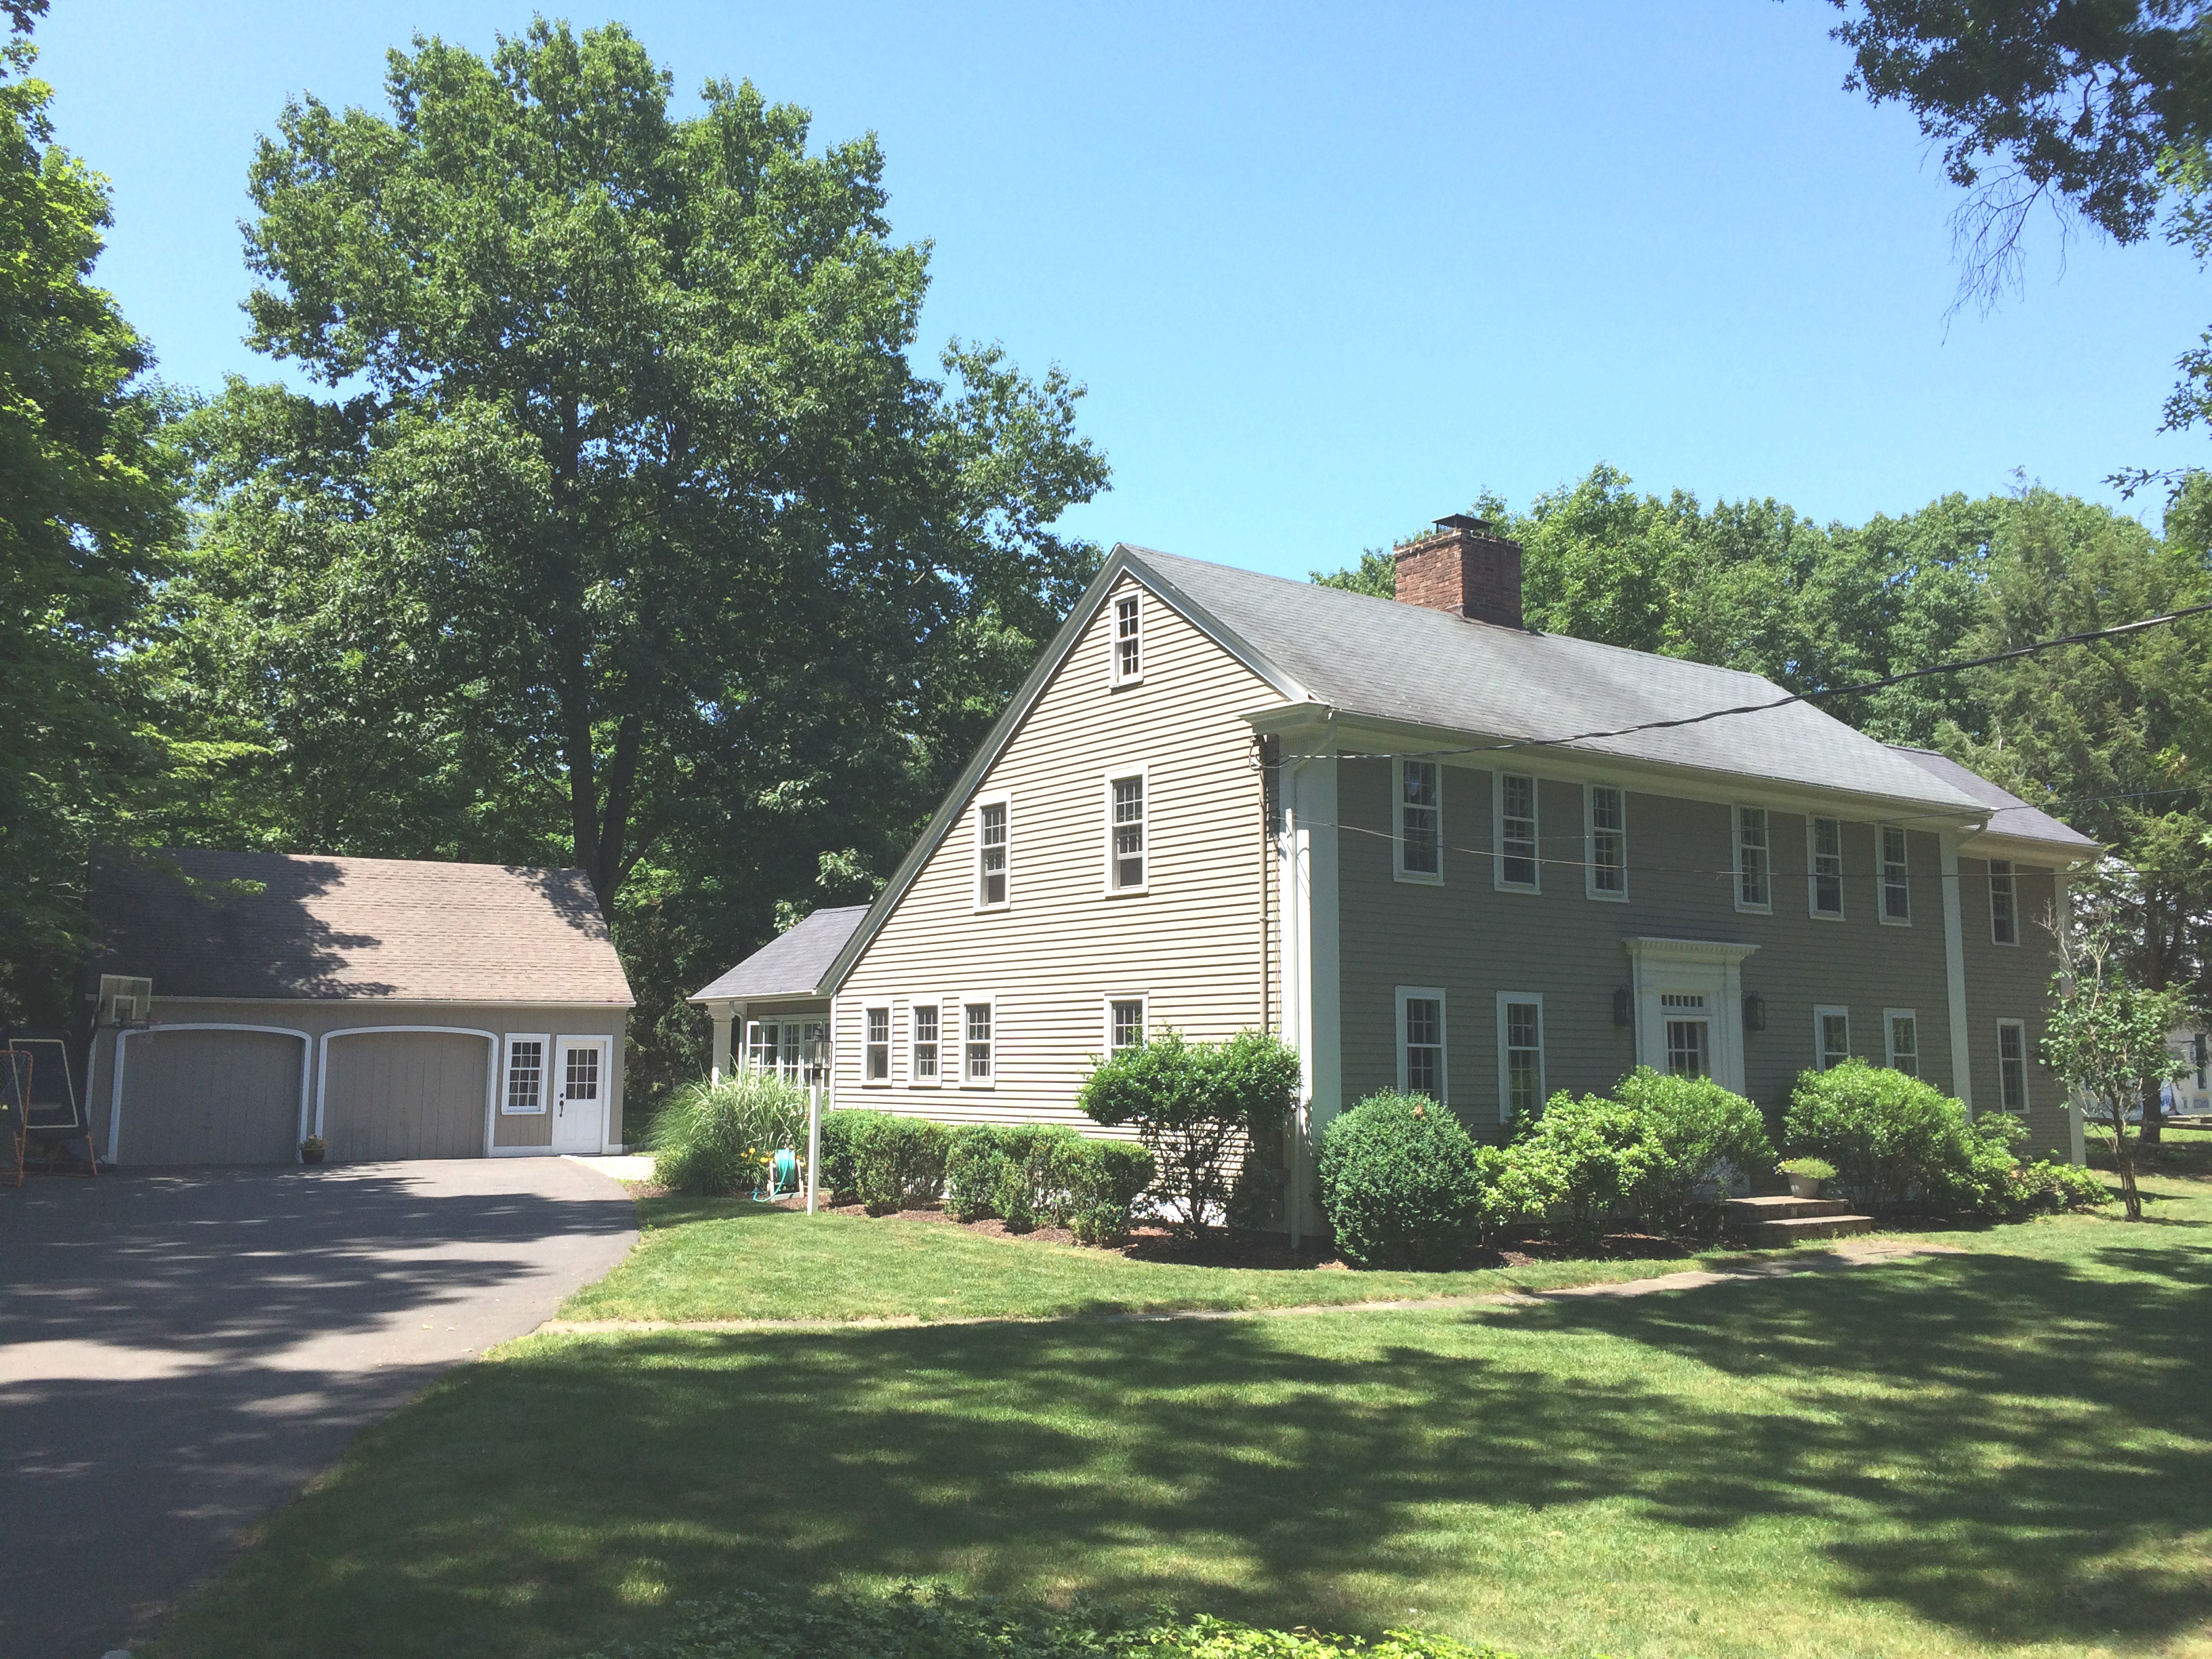 Single Family Home for Sale at NORTH CEDAR 370 North Cedar Road Fairfield, Connecticut, 06824 United States